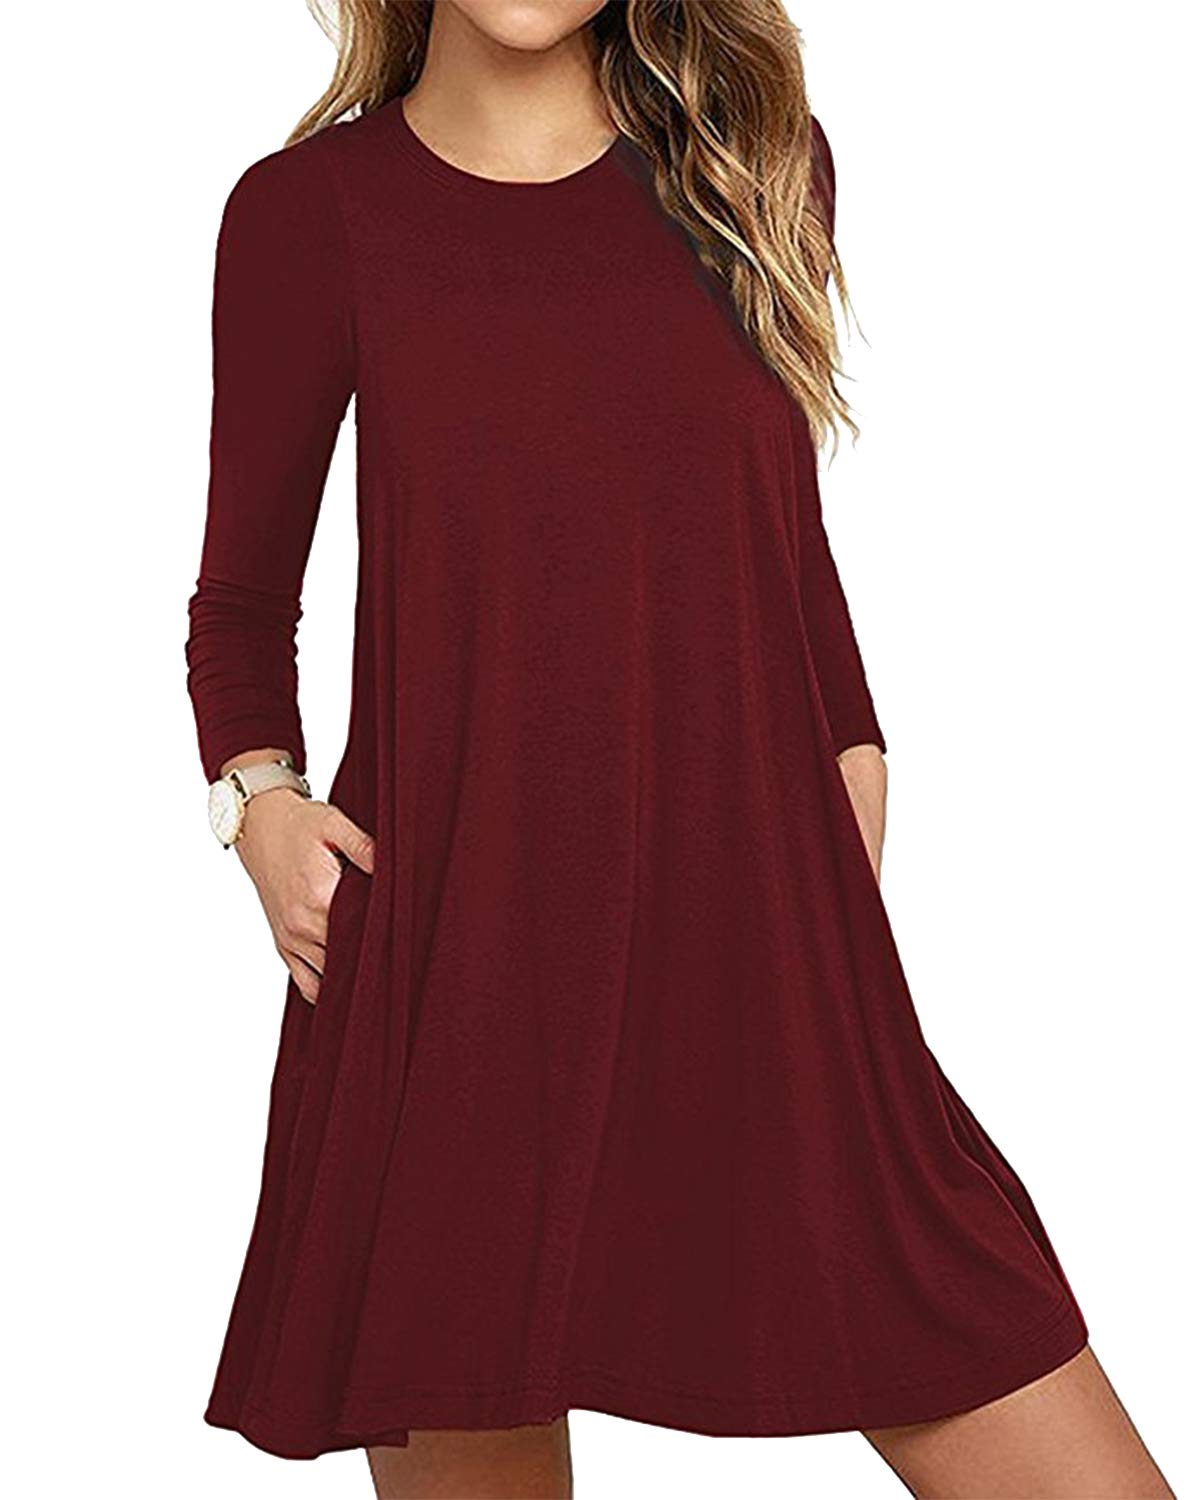 Deesdail Burgundy Dress for Women, Ladies Crew Neck Raglan Sleeves T-Shirt Dress with Pockets Stretchy Solid Color Cozy Flare Long Tunic